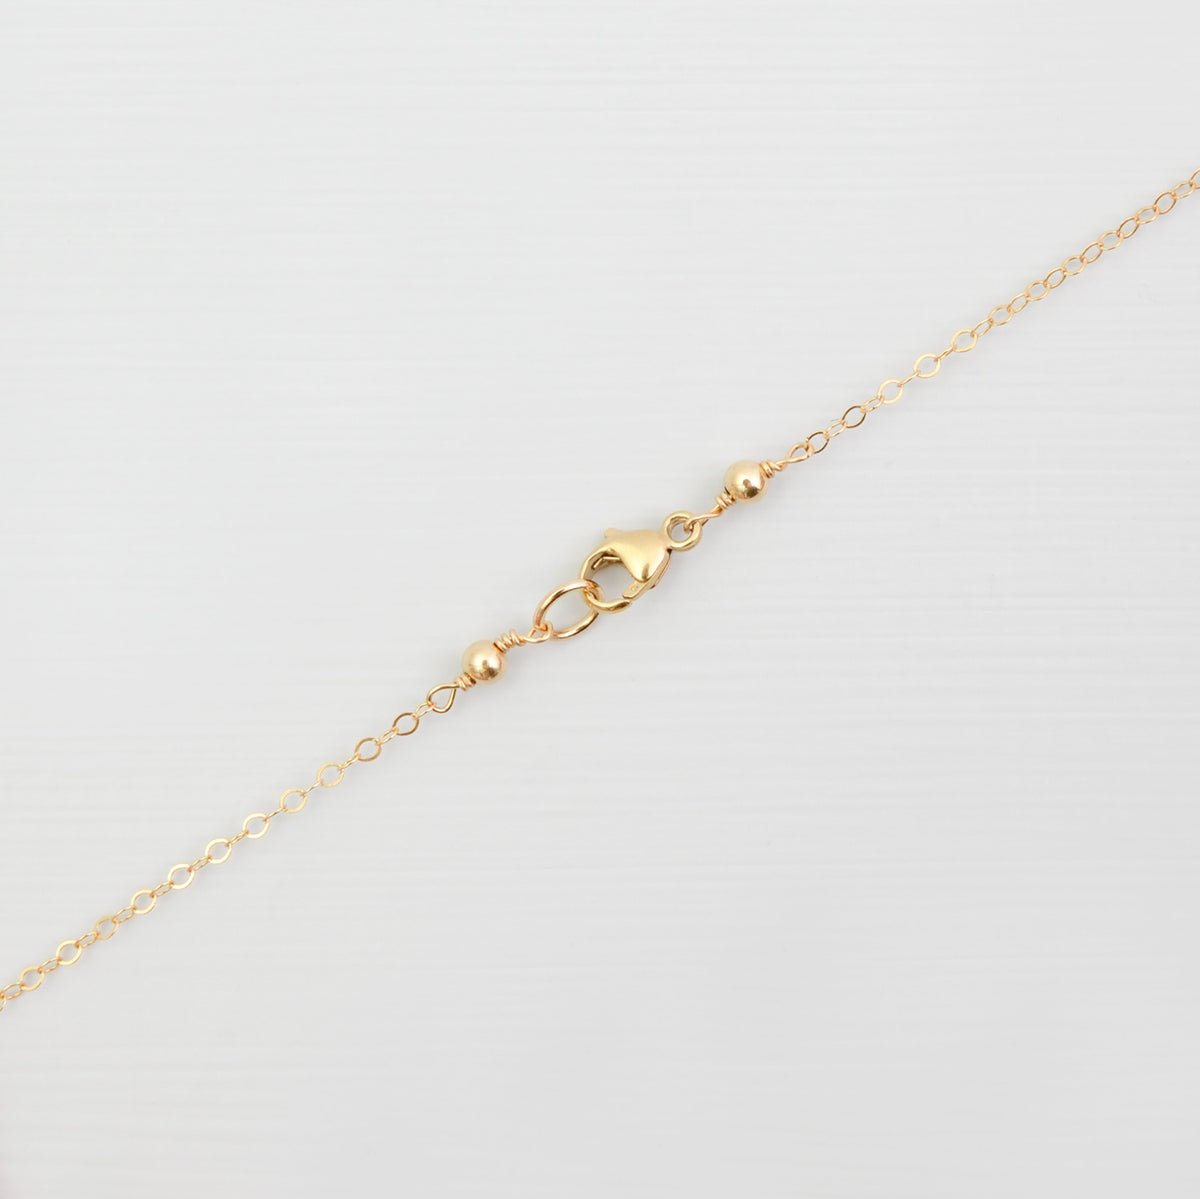 Tiny freshwater pearl necklace 'Rei'